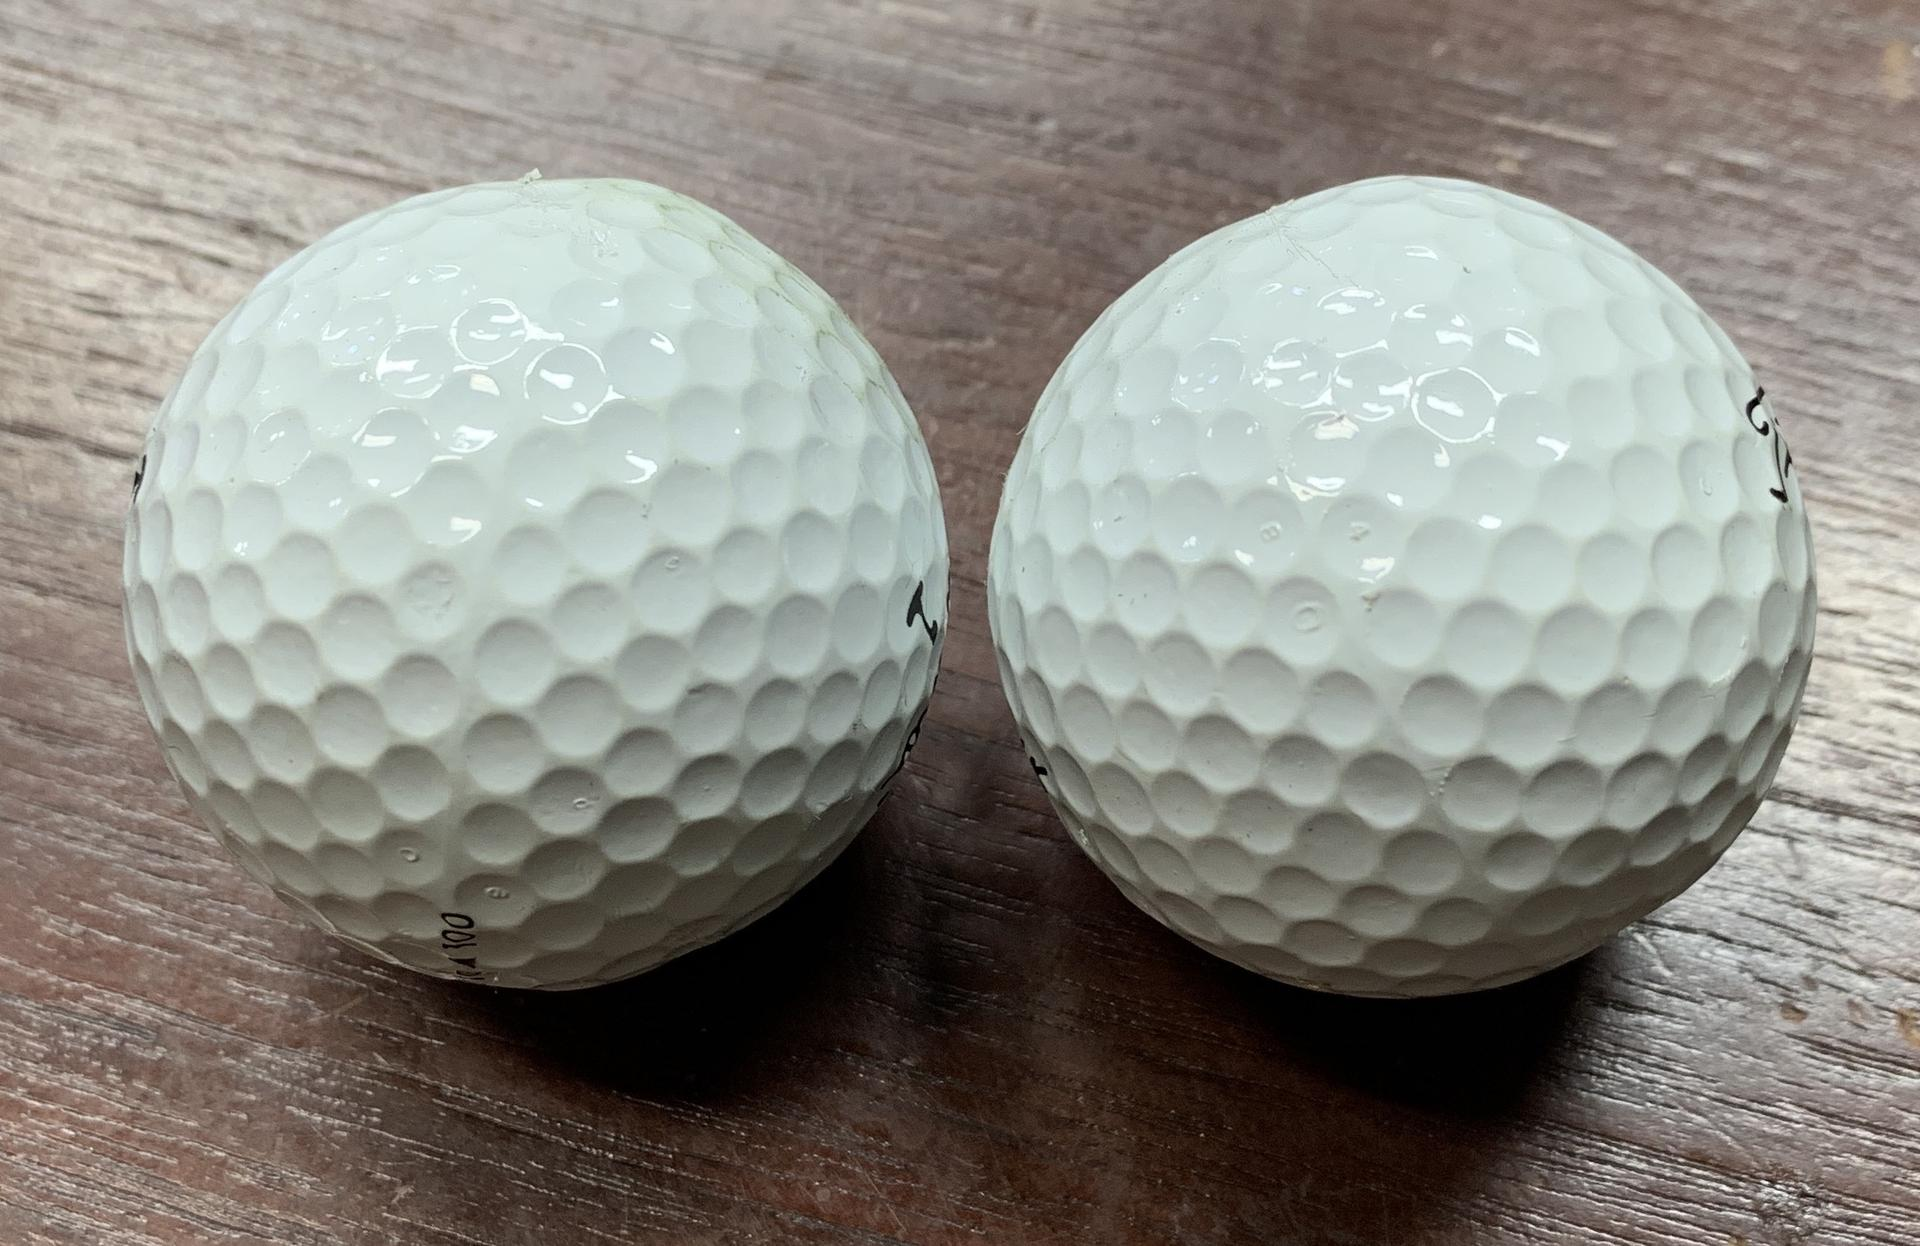 balata_smiley_golf_ball_bumps.jpg